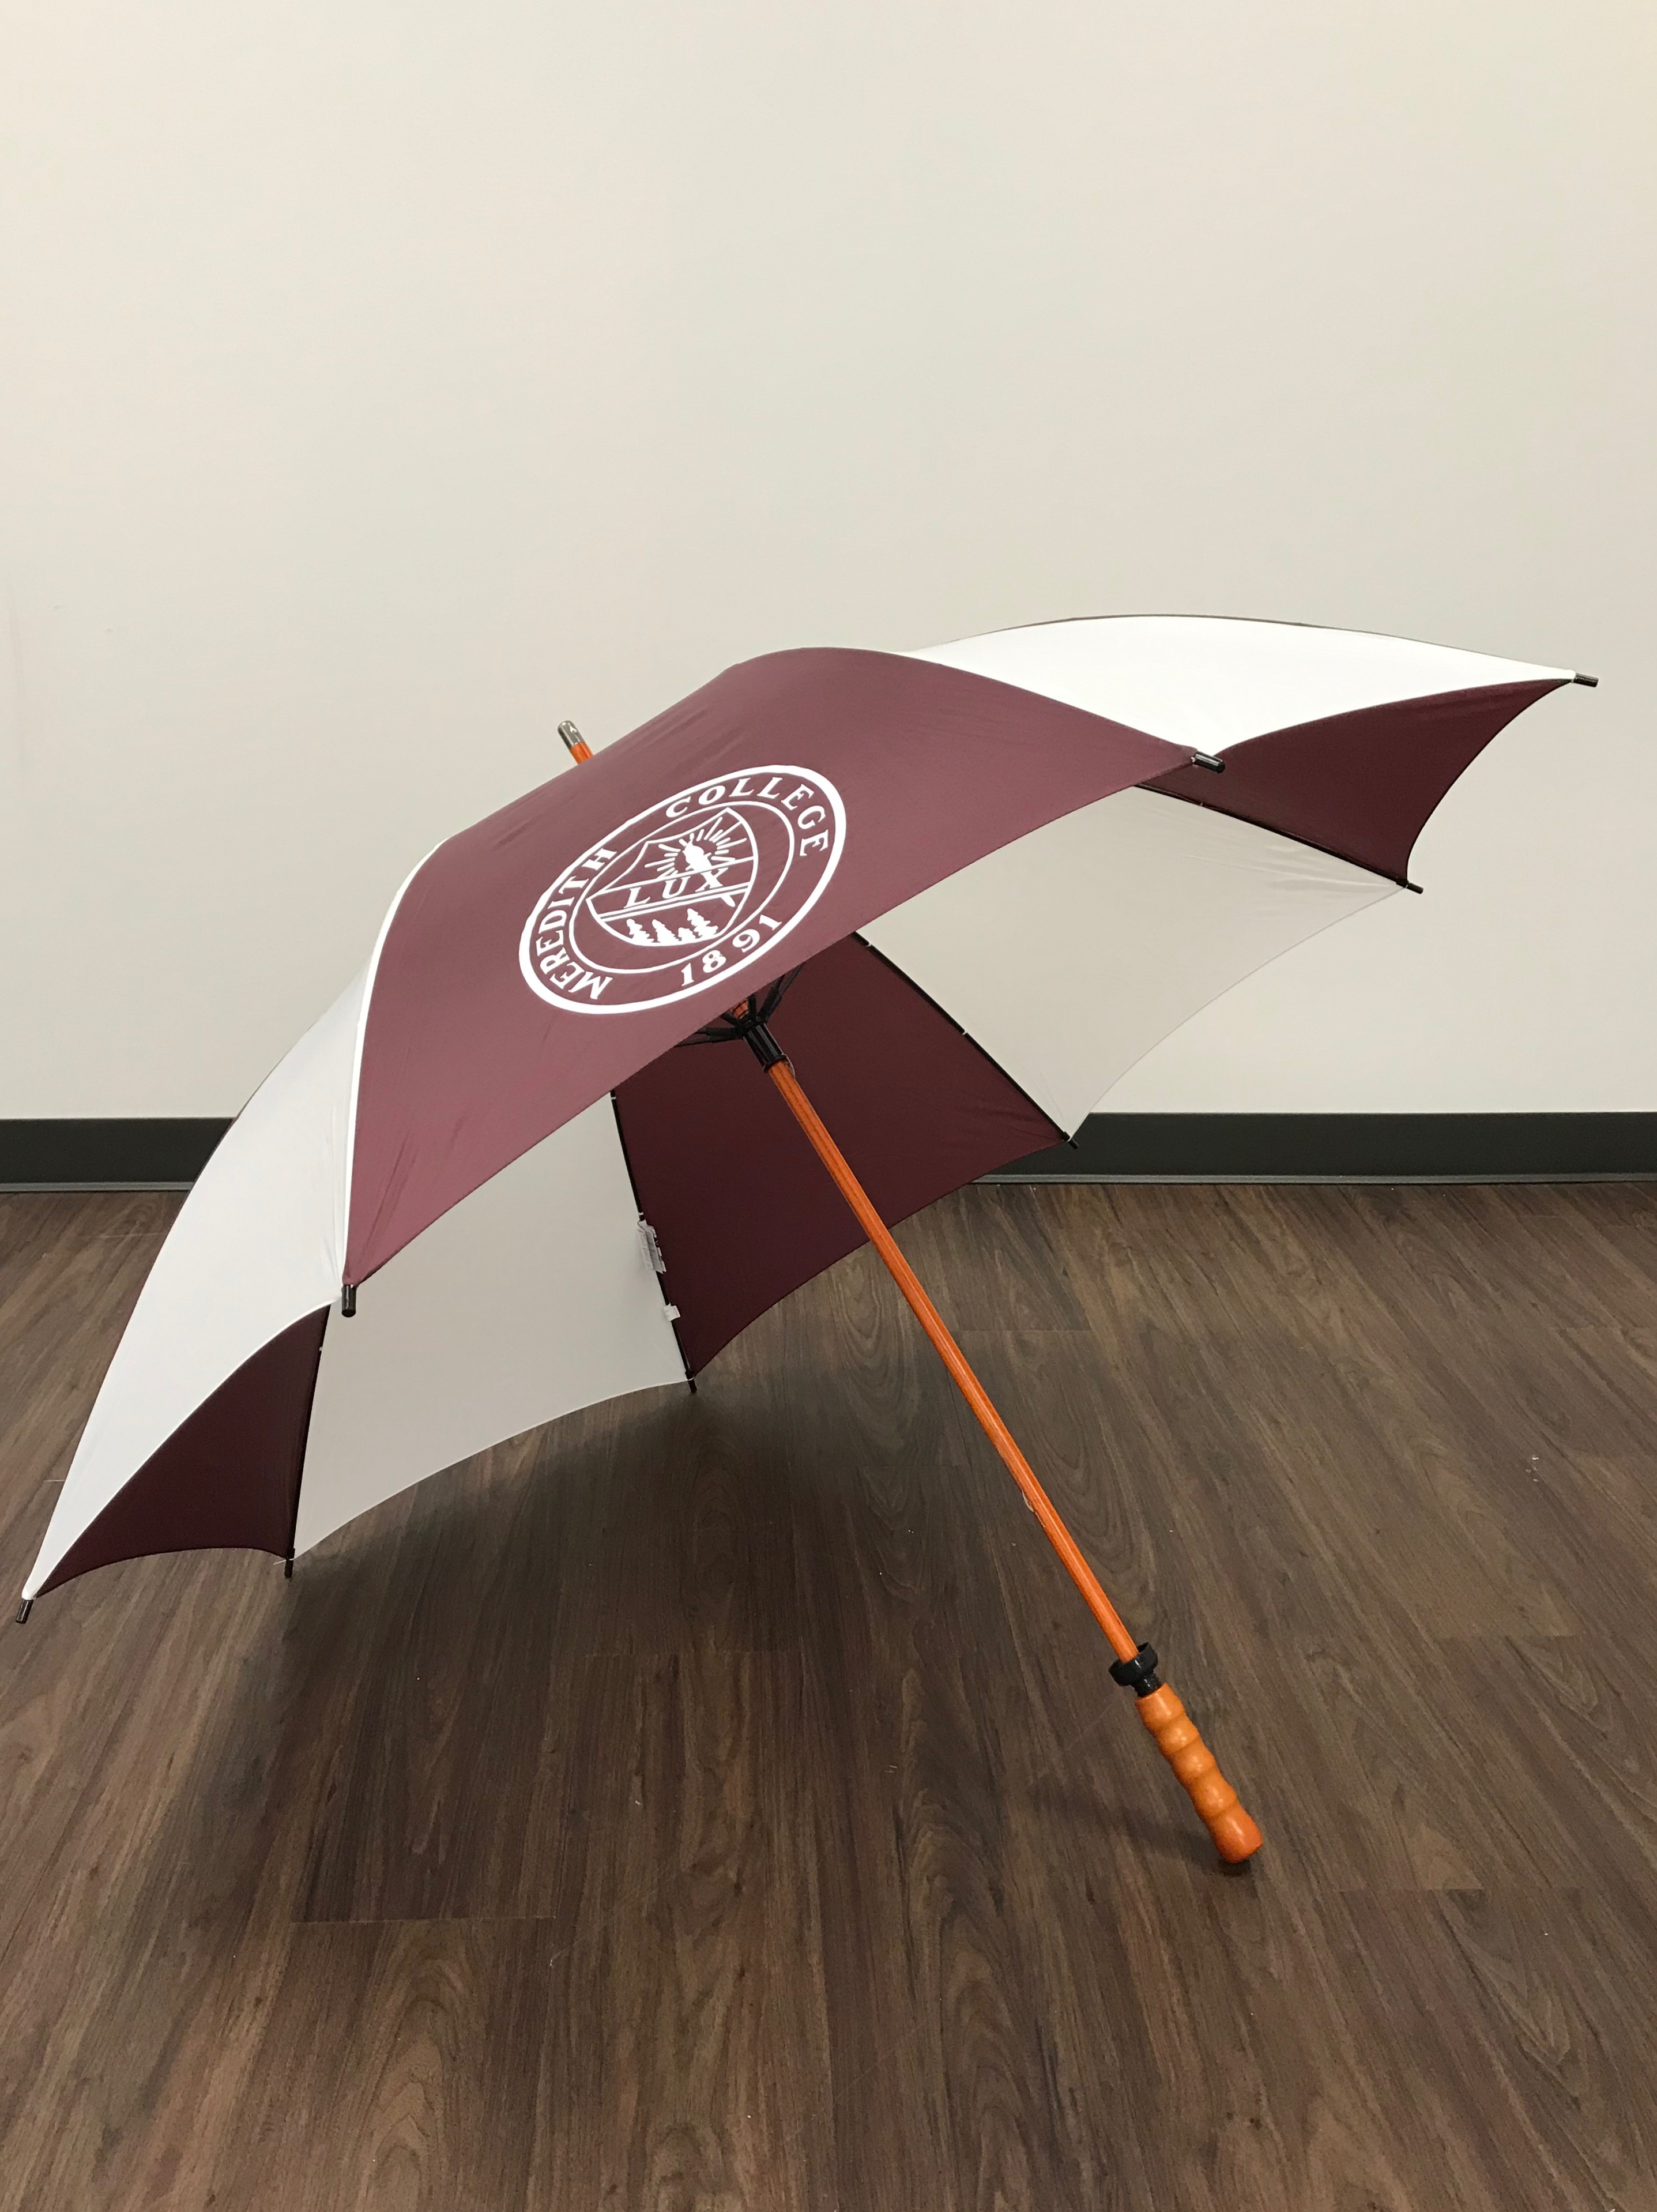 Image for the Golf Umbrella w/ Wood Shaft w/Lux product